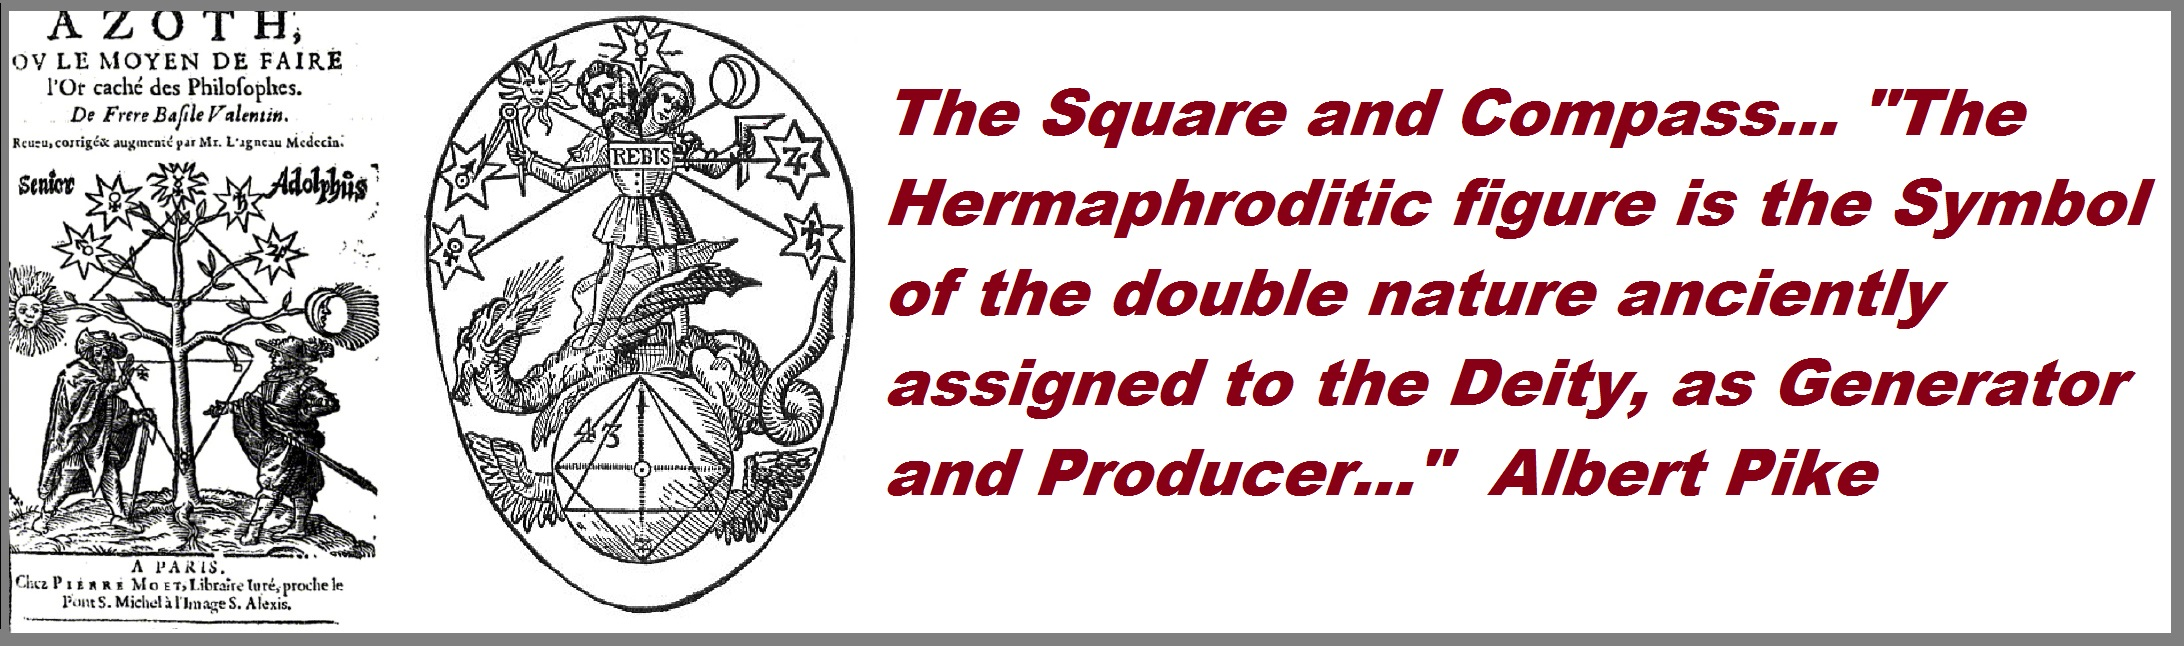 The Square And Compass The Hermaphroditic Figure Is The Symbol Of